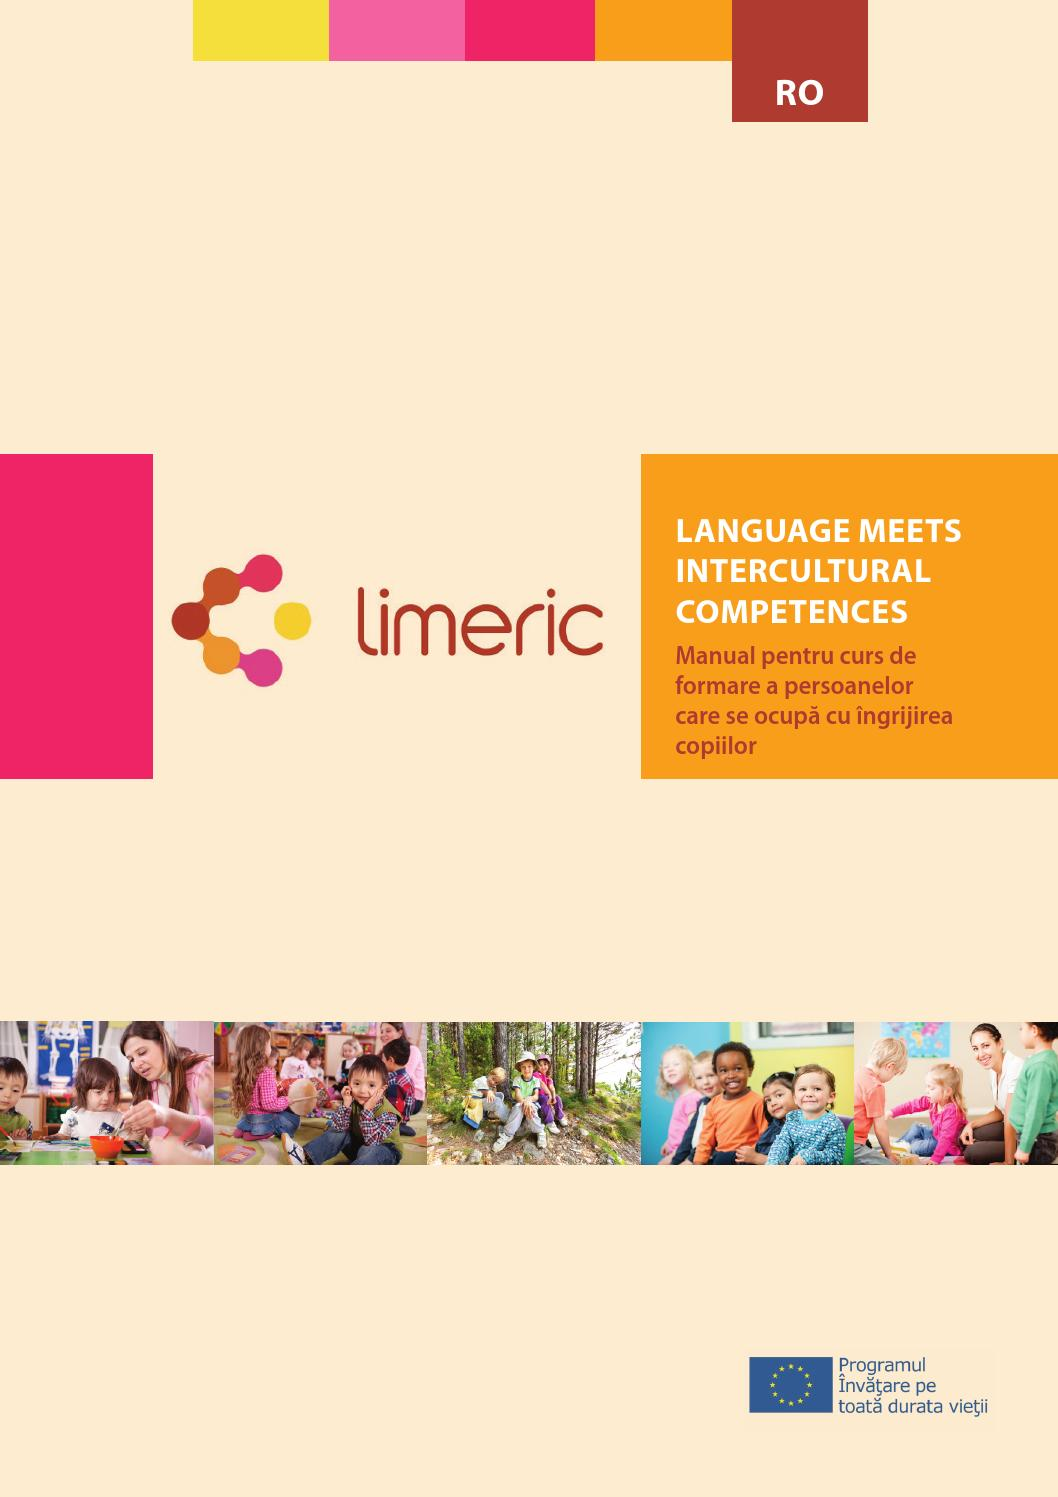 Limeric Handbook Ro By Eda Servizi Issuu It is one of several subcategories to emerge from the study of nonverbal communication. issuu